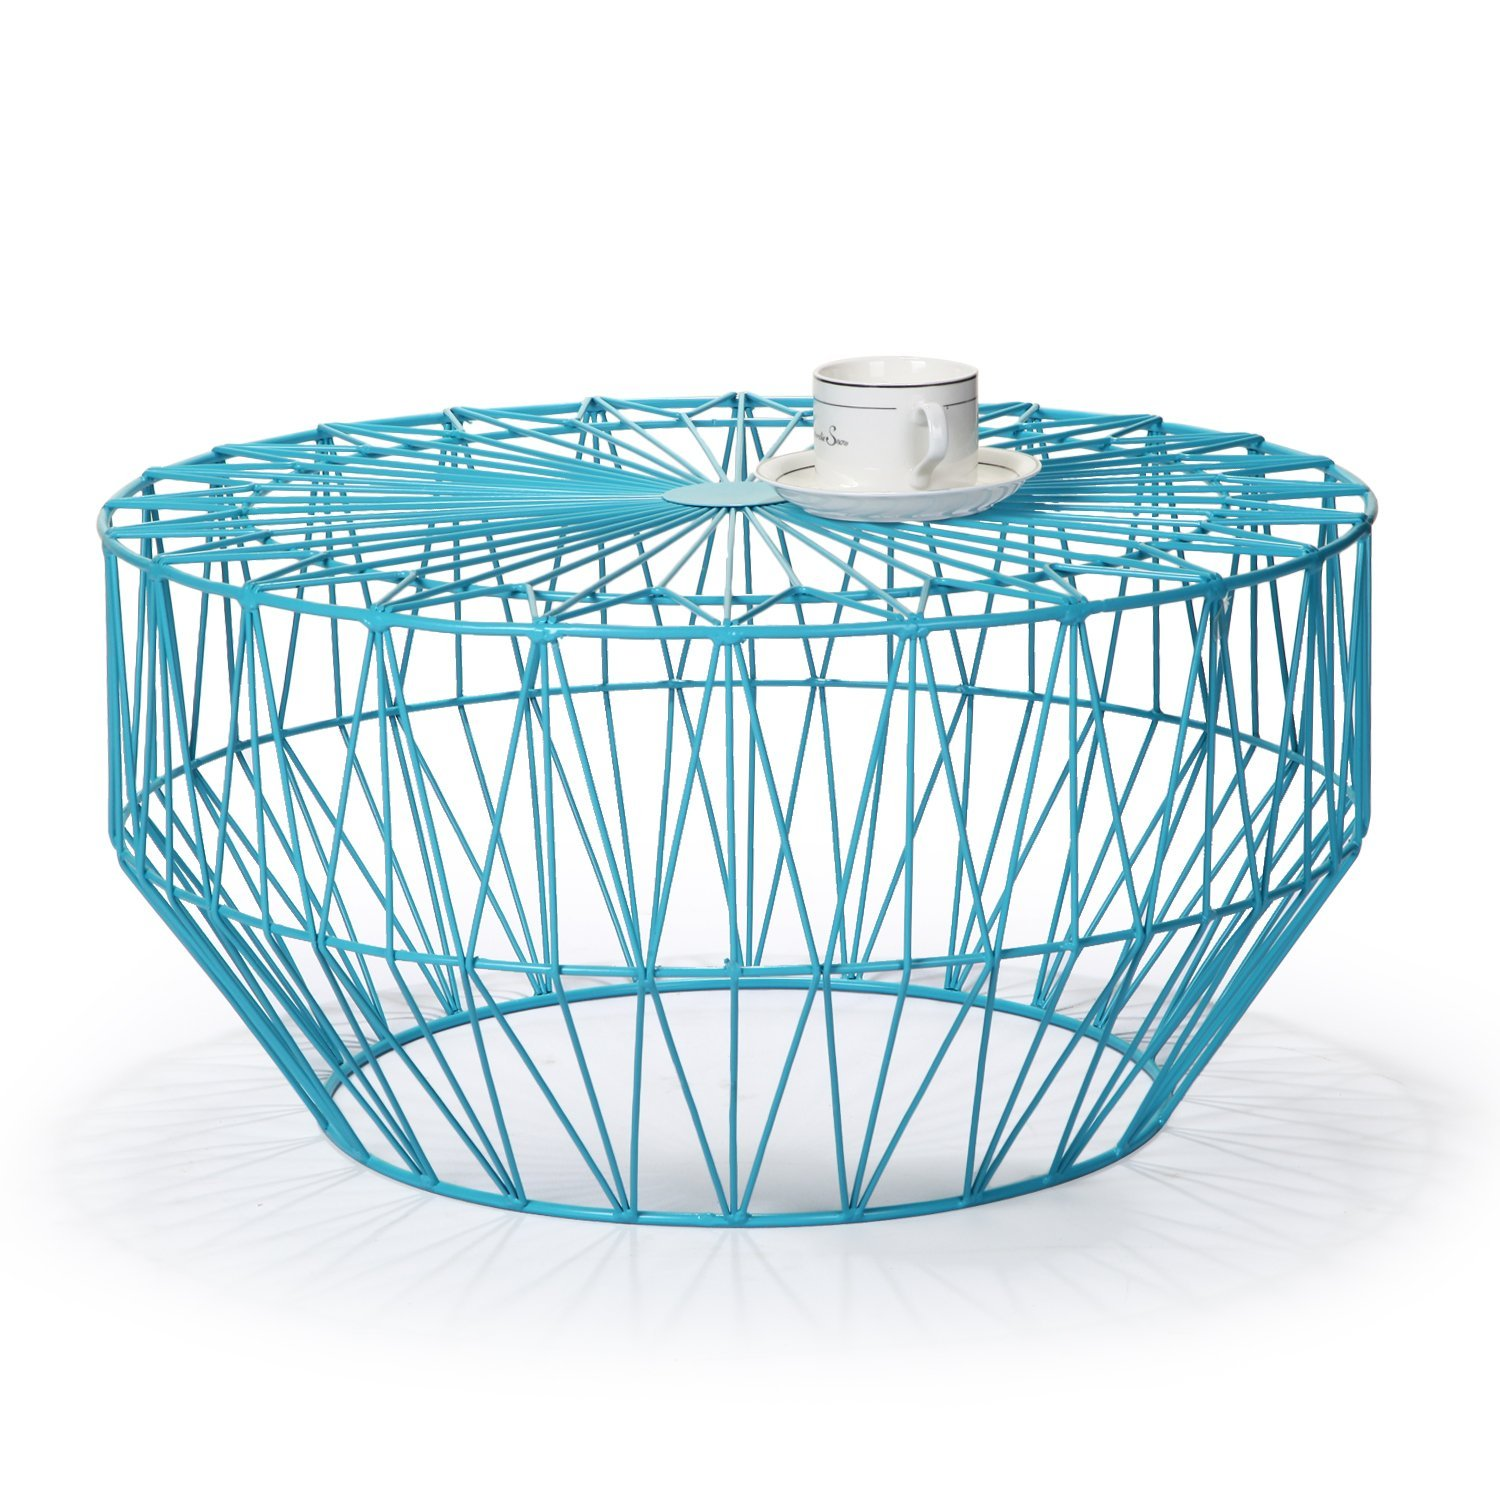 joveco round metal iron wire structure coffee table sofa with triangle pattern light blue adeco accent starburst end side sky thin console west elm carpets solid marble mohawk